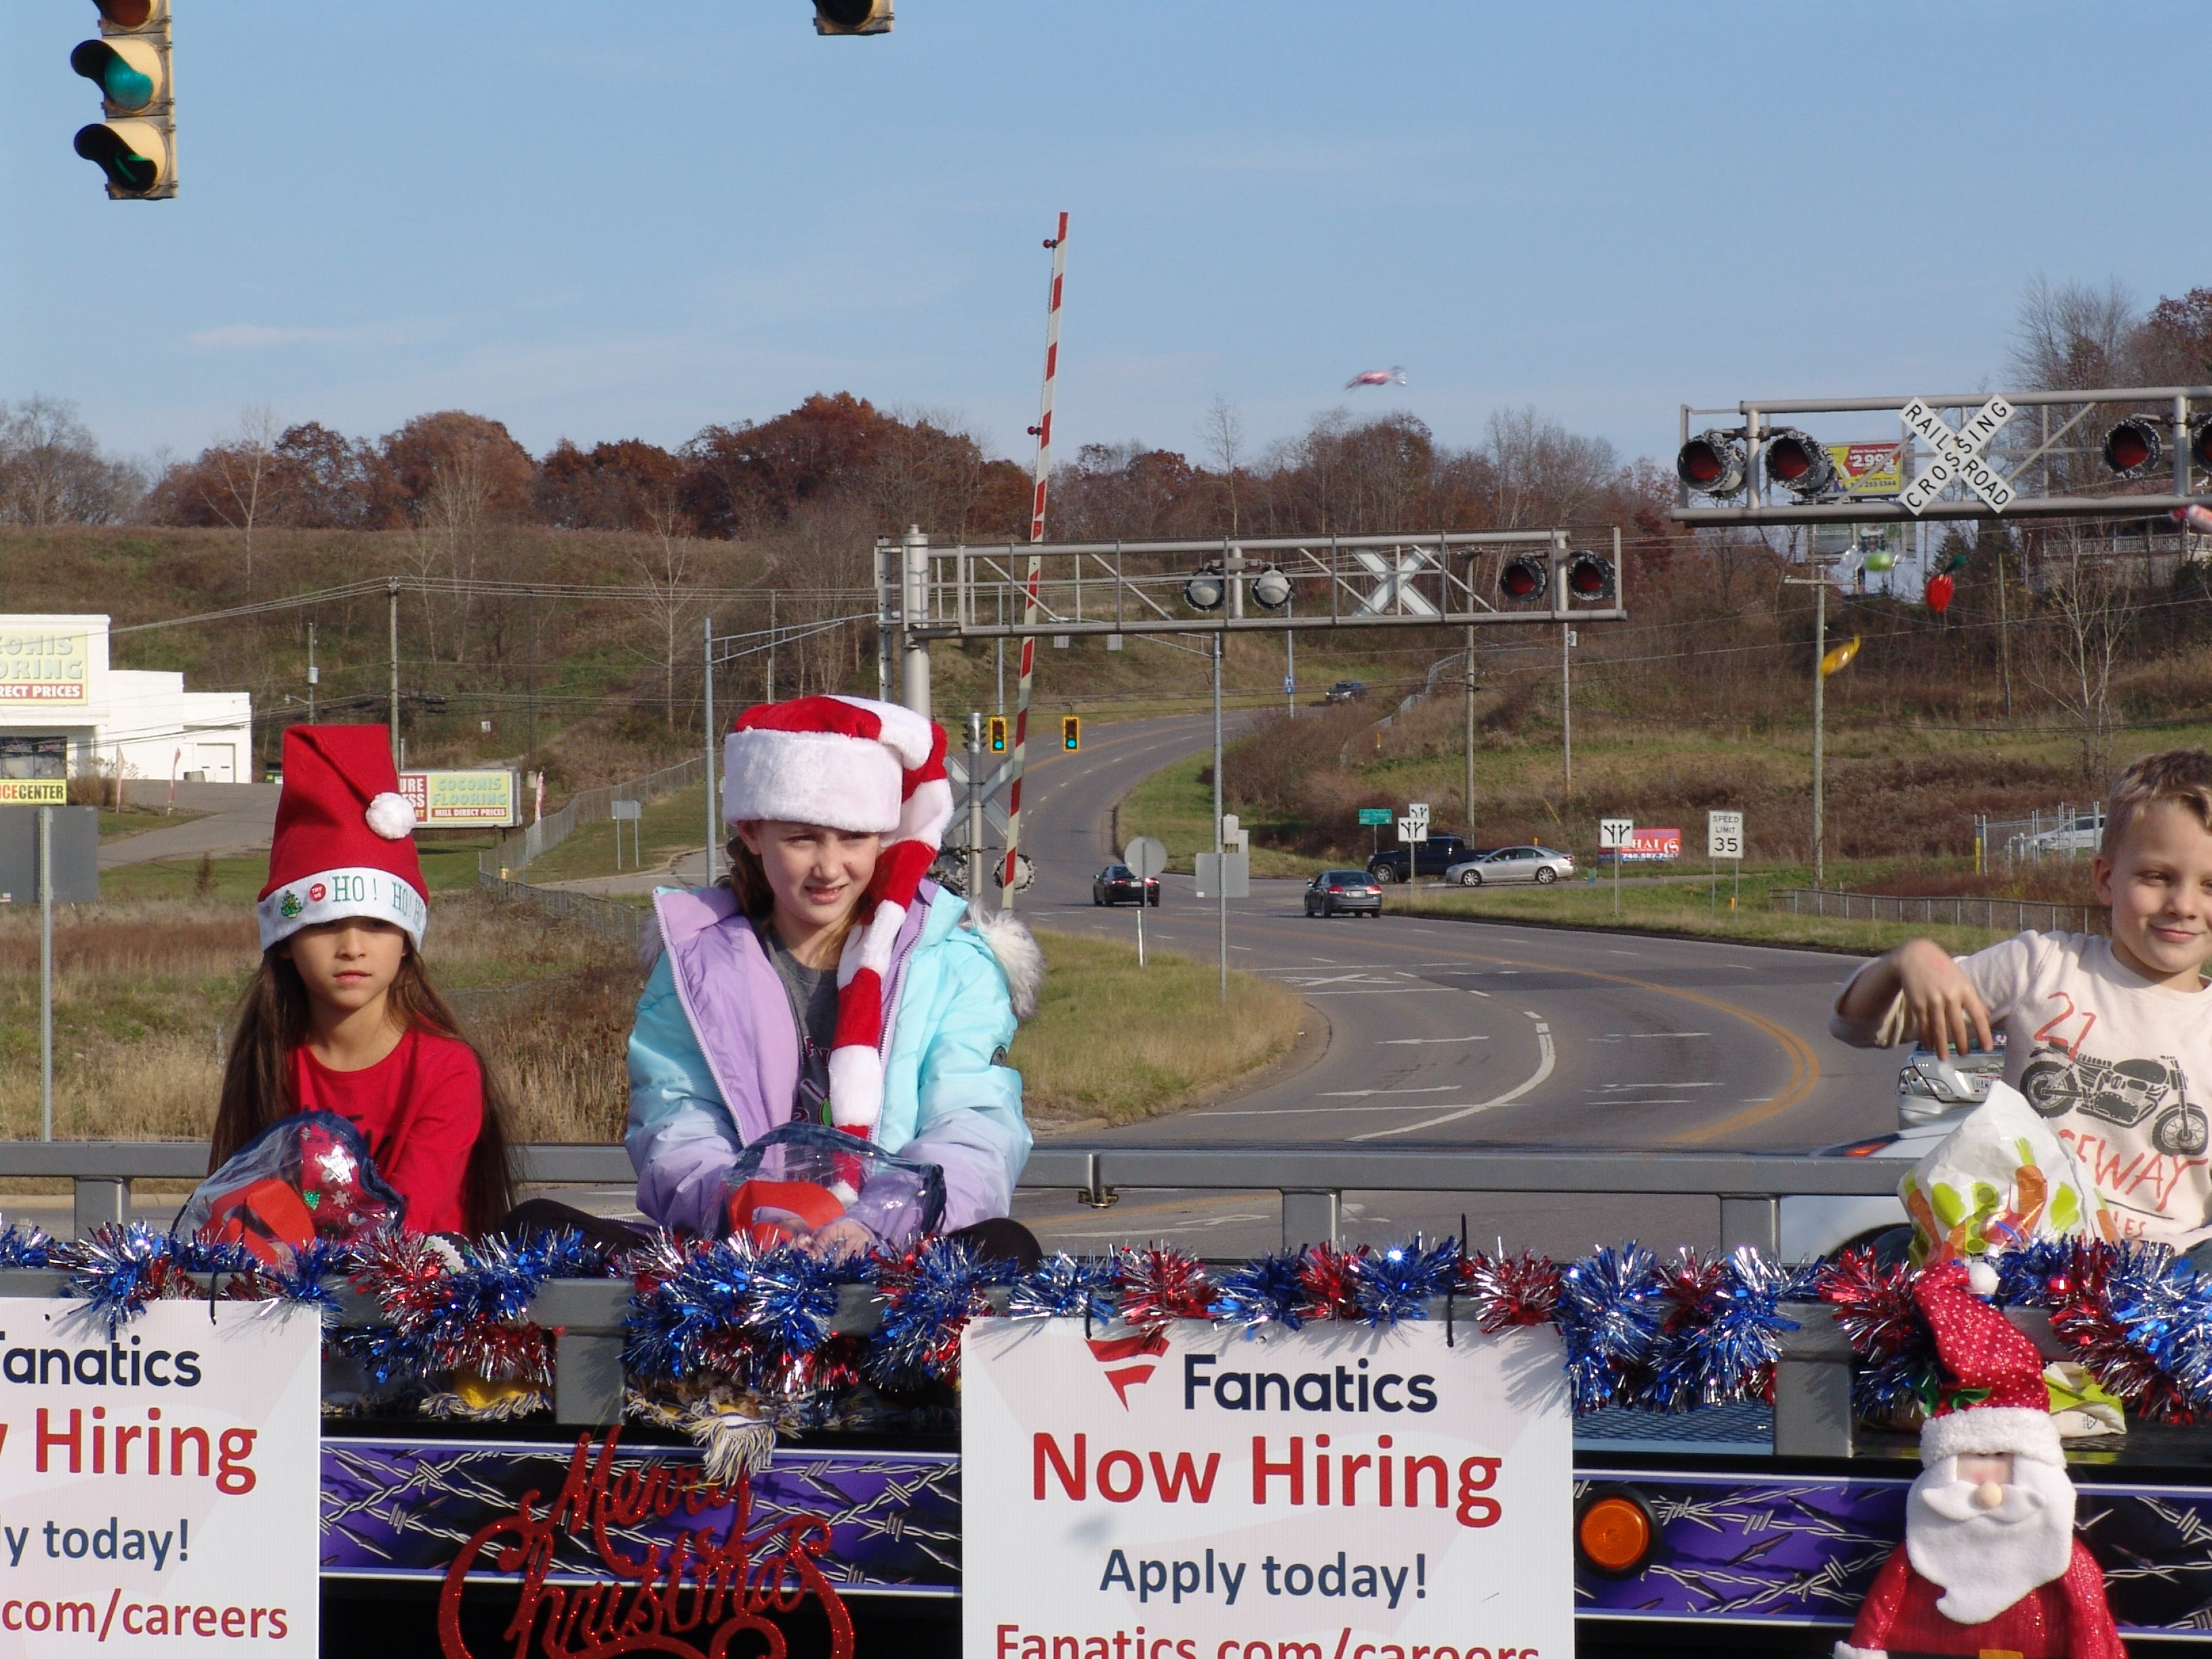 The 2018 Storybook Christmas Parade, sponsored by the Zanesville South Business Association, made its way through South Zanesville on Saturday.